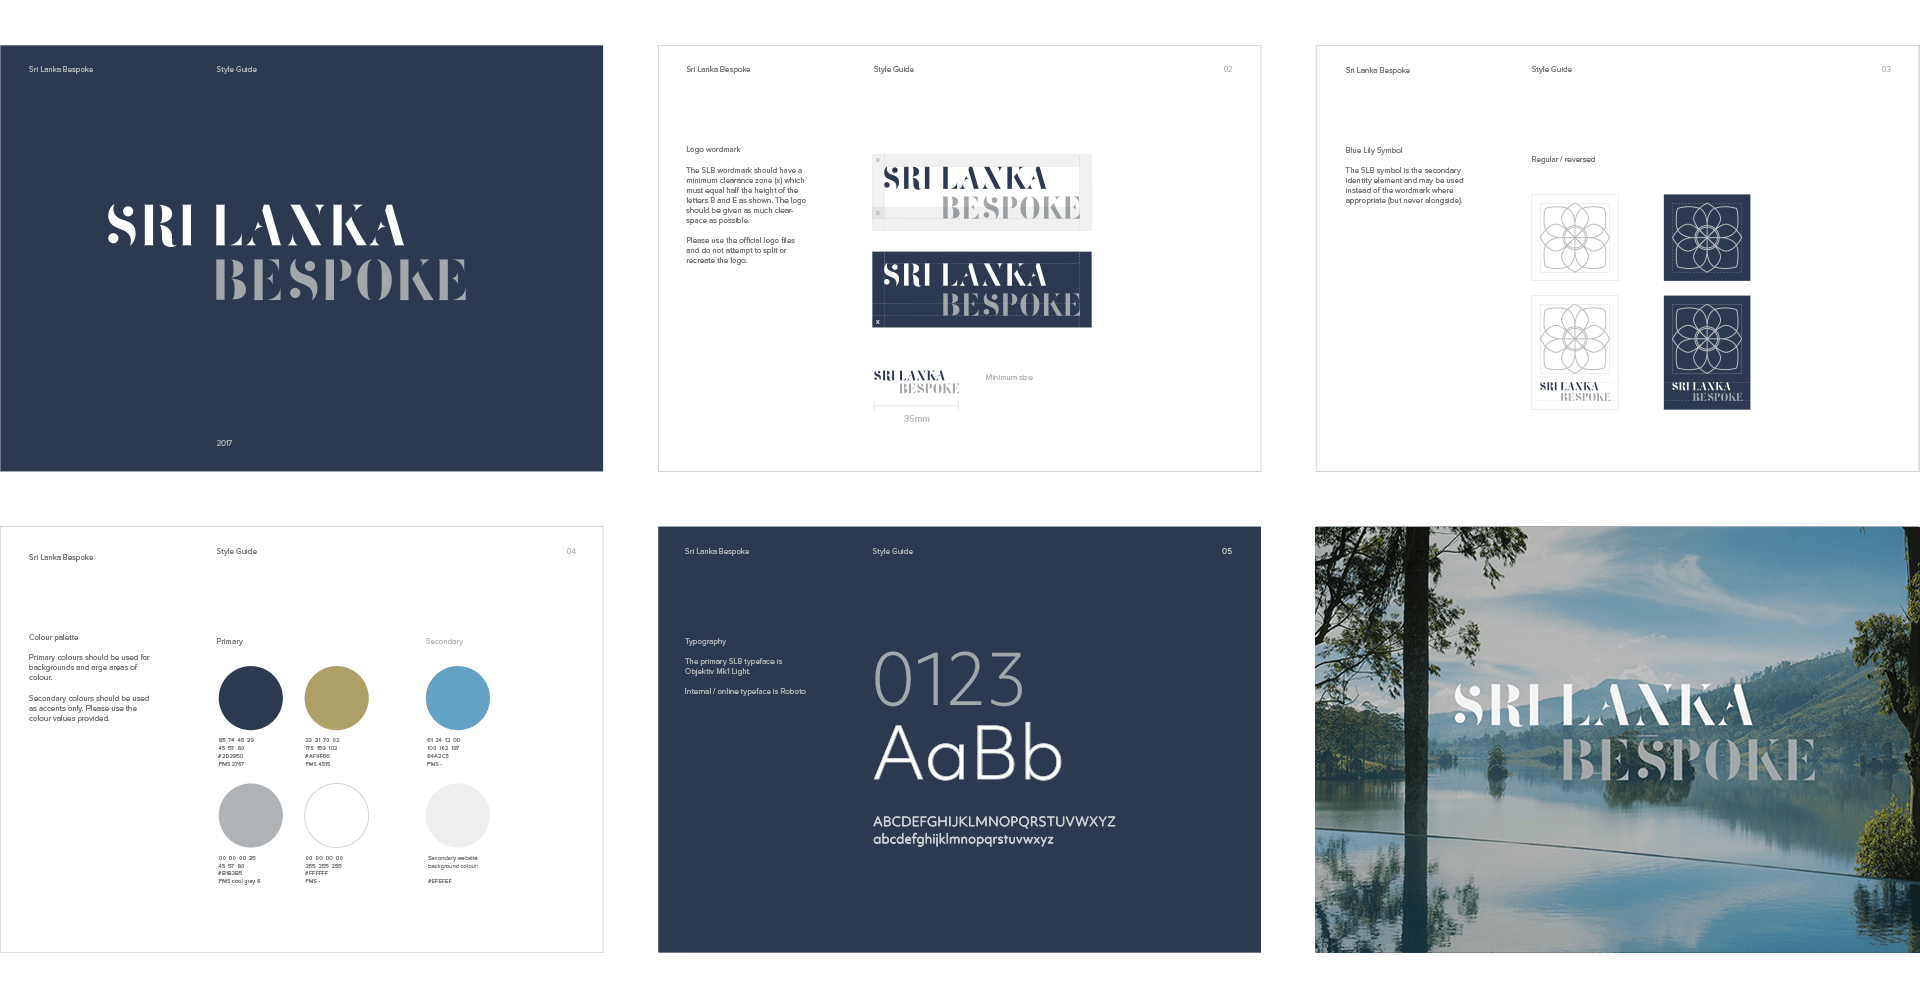 SLB brand guidelines